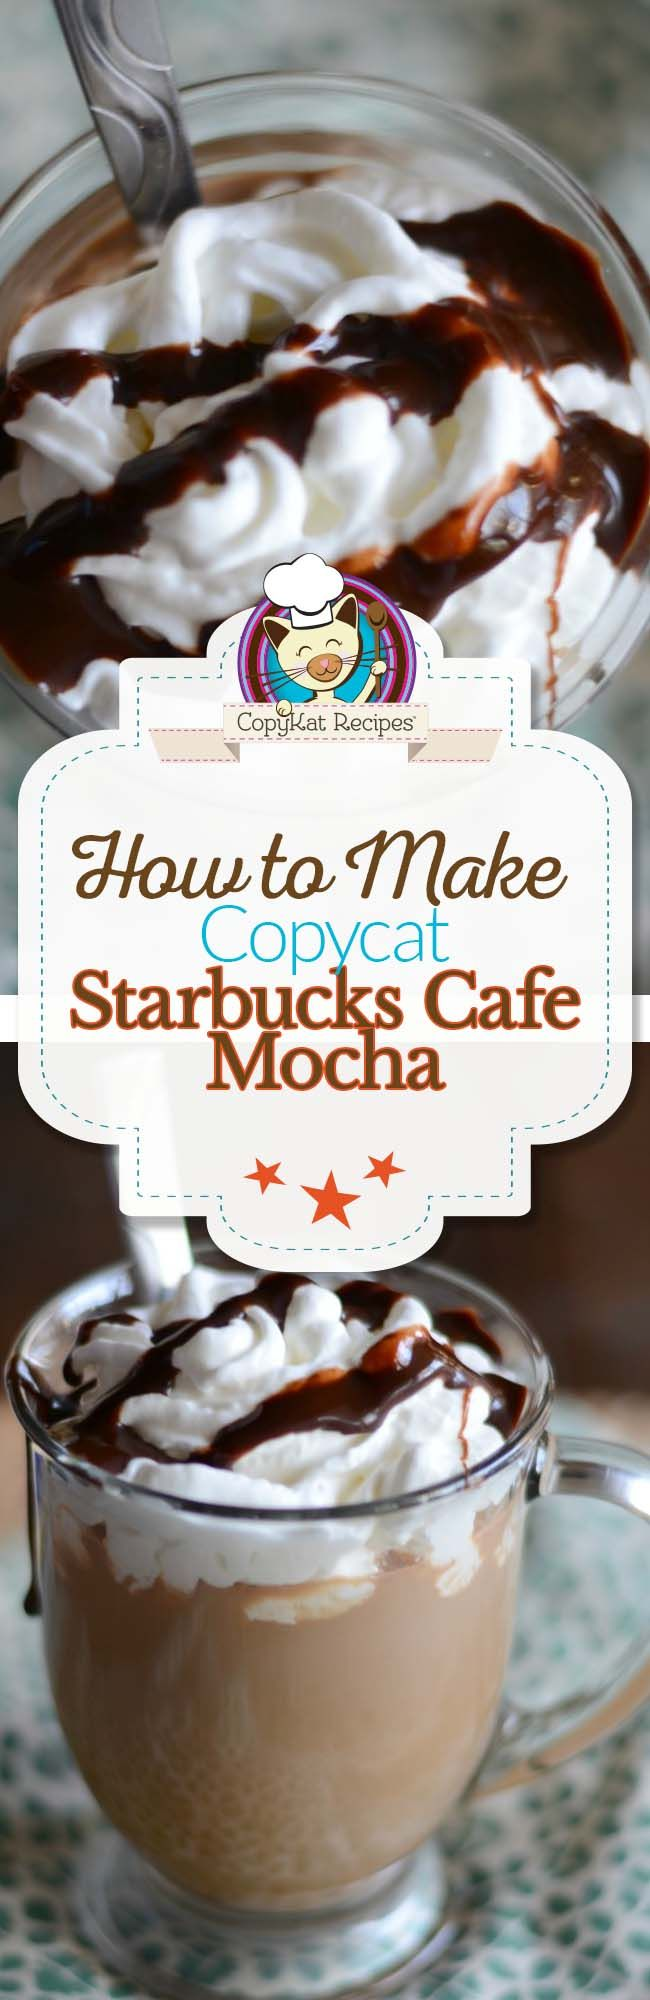 Make your own delicious Starbucks Cafe Mocha at home with this easy copycat recipe.